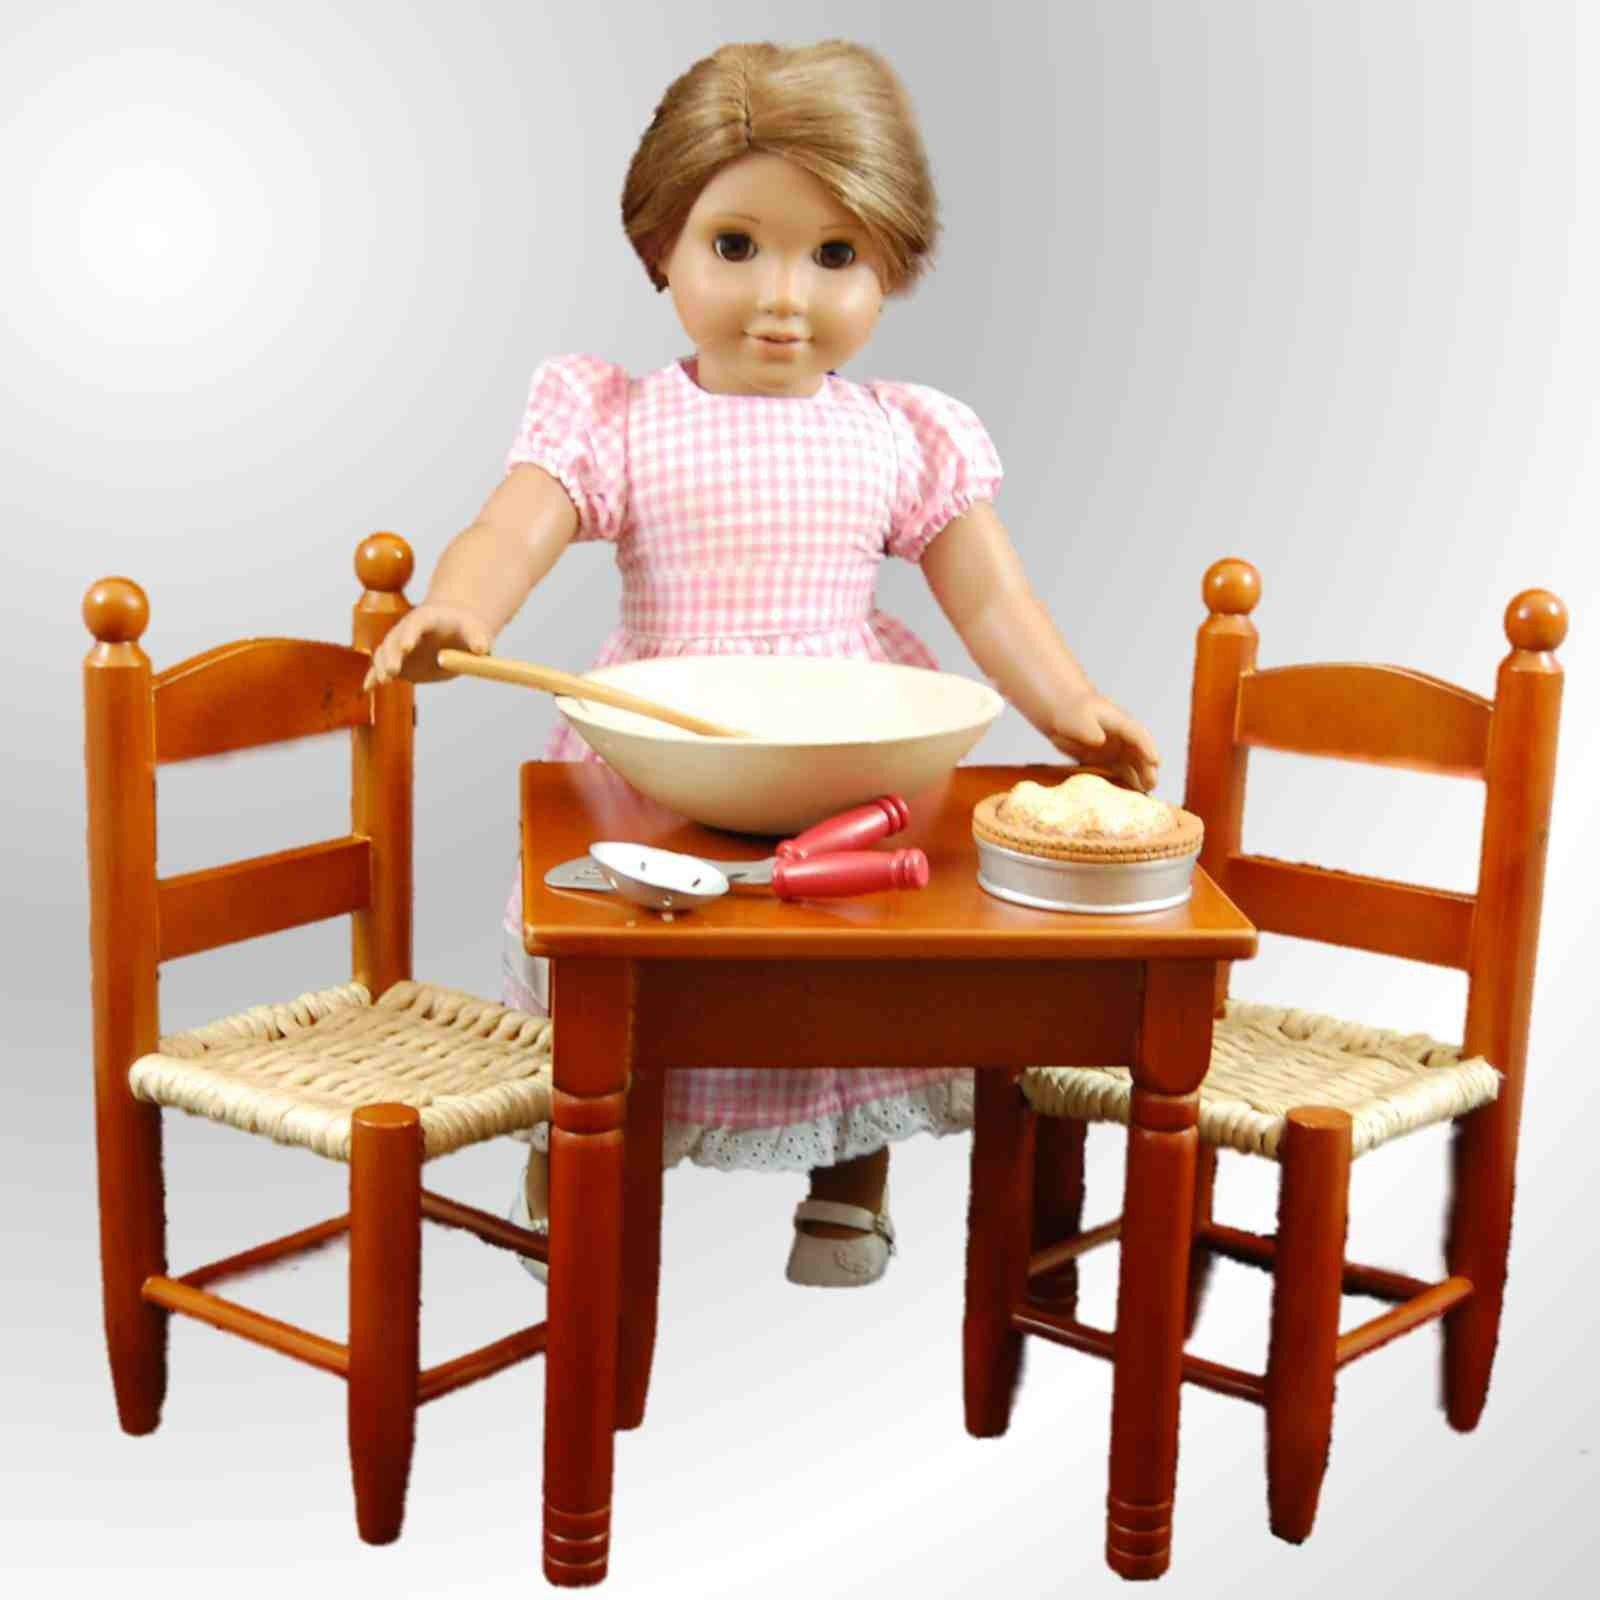 american girl high chair cracker barrel chairs the queen 39s treasures country kitchen dining table and 2